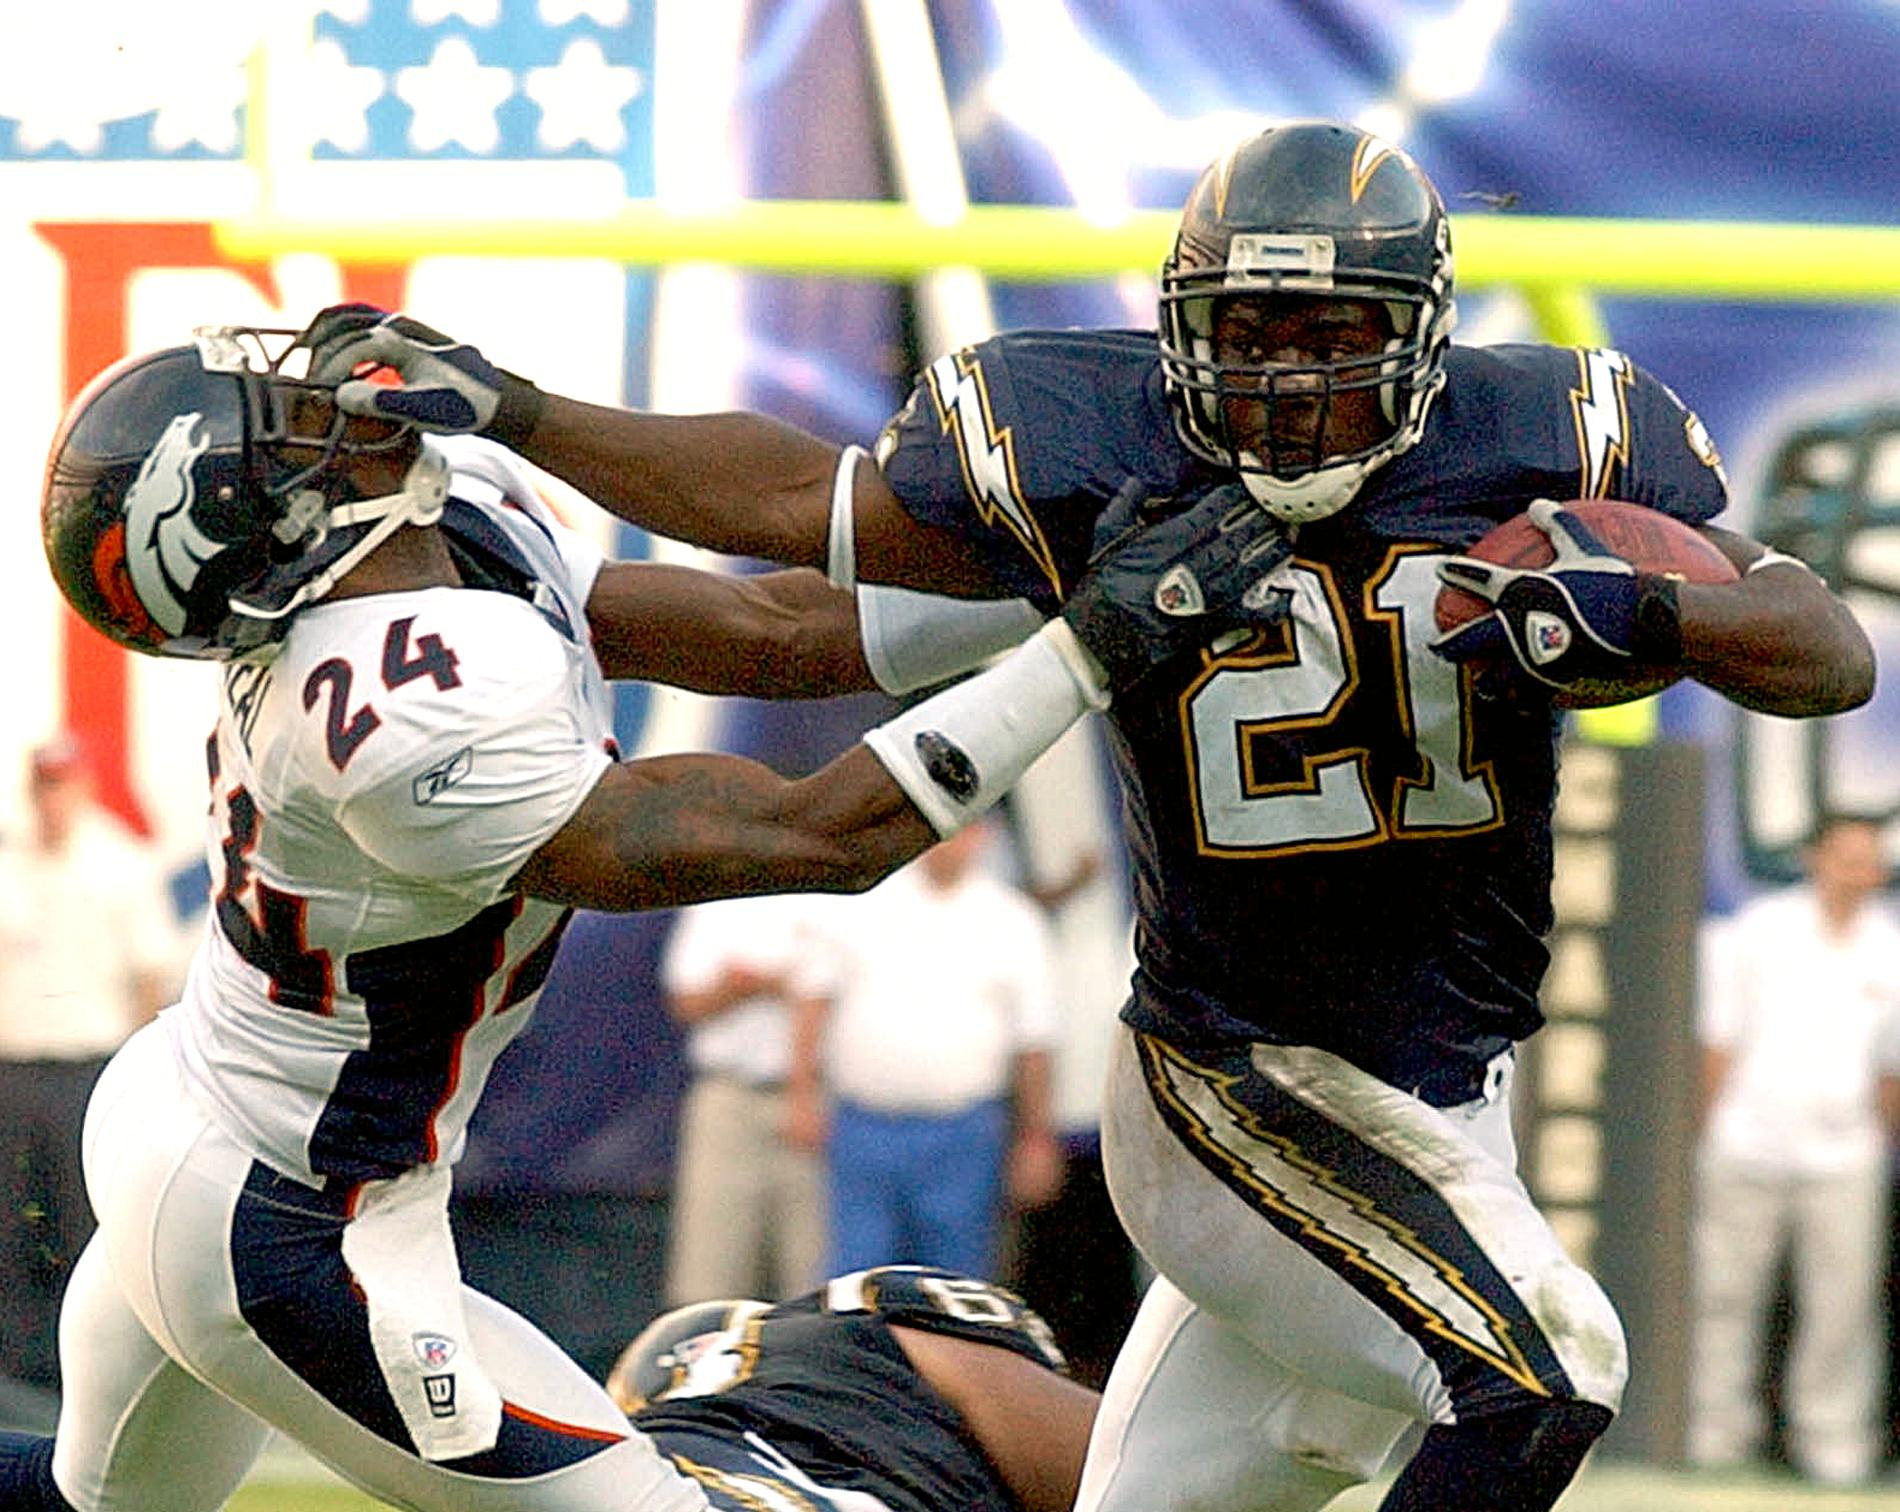 San Diego Charger LaDainian Tomlinson (R) fends of